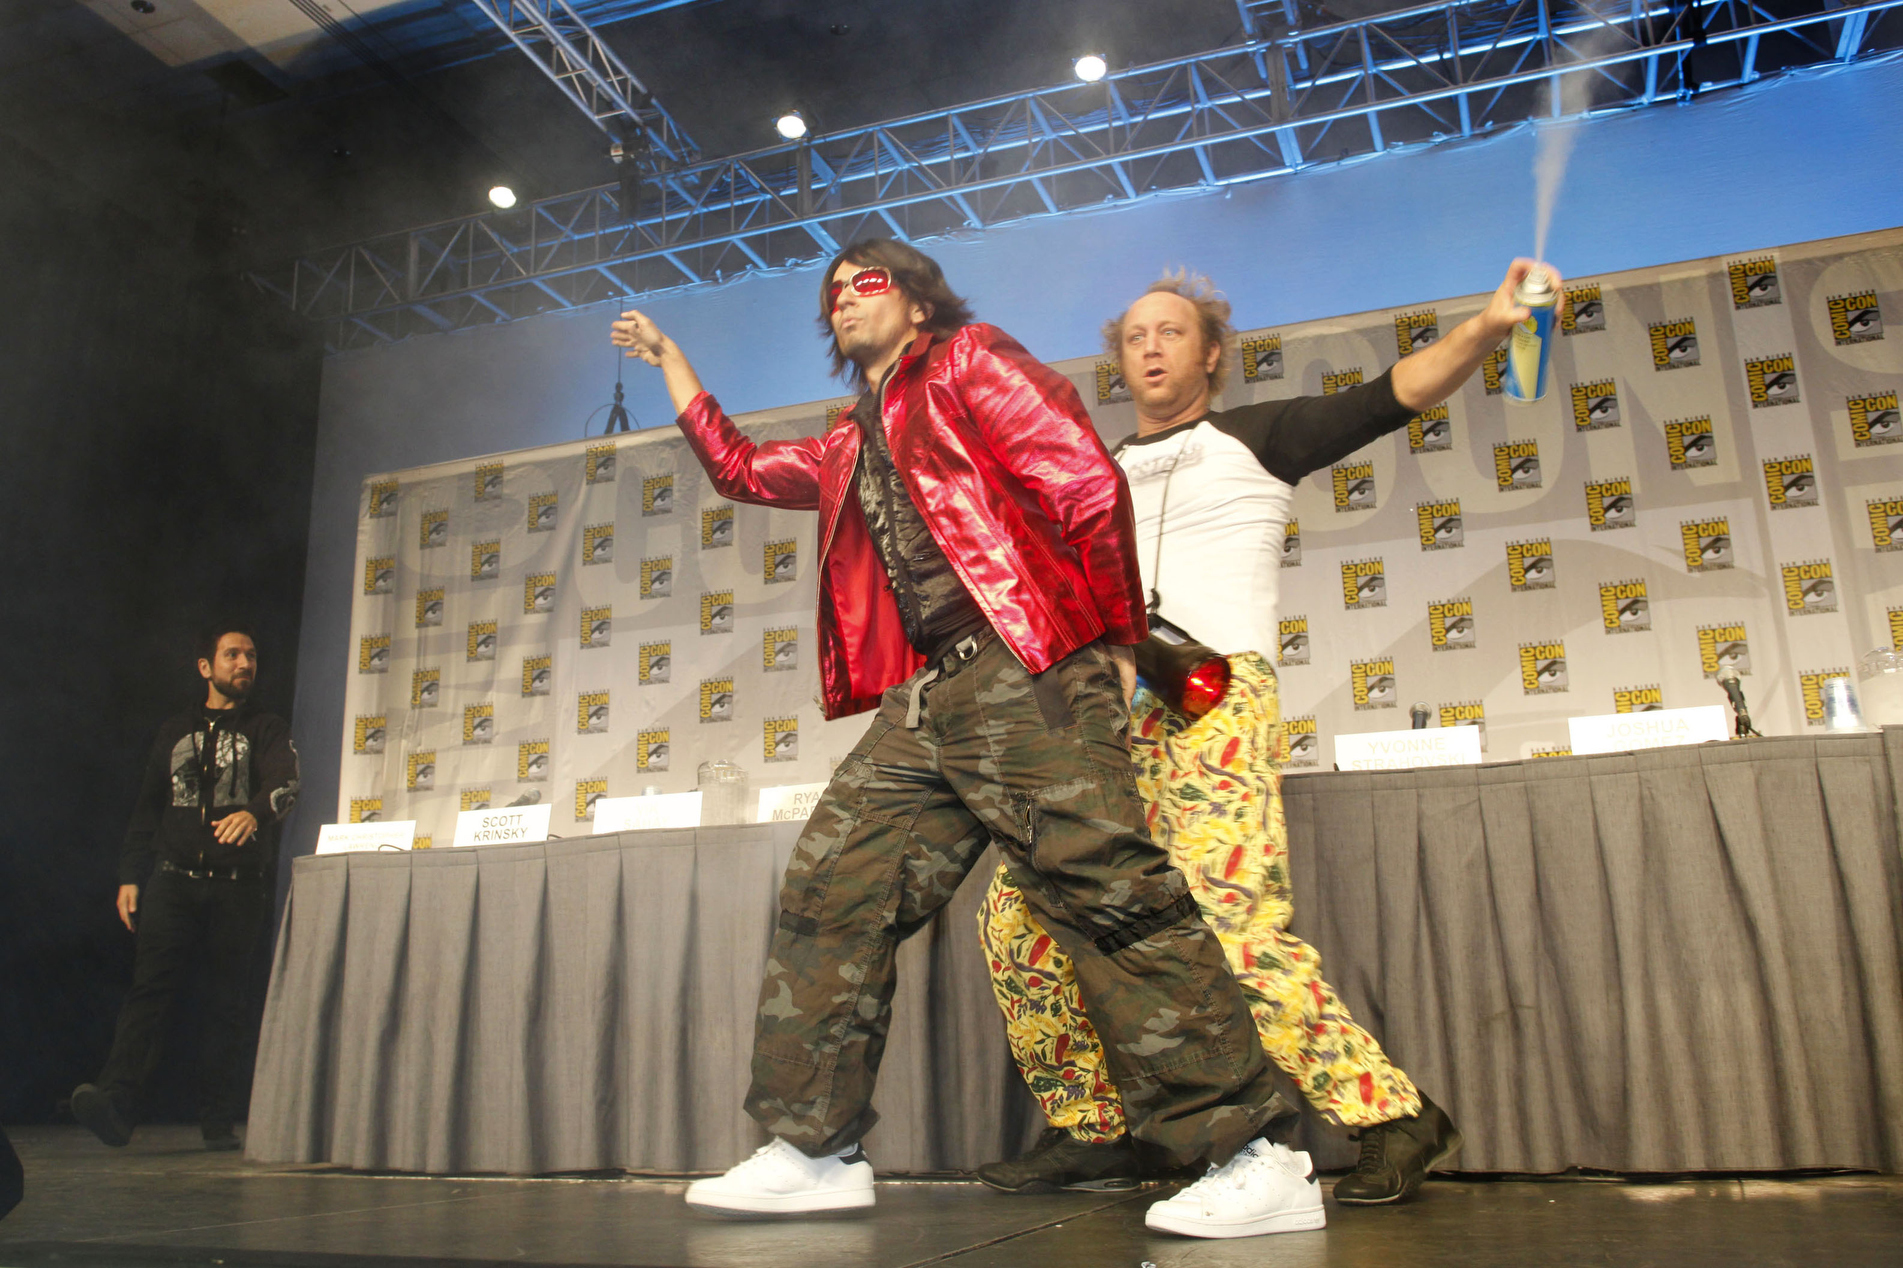 Vik Sahay and Scott Krinsky at an event for Chuck (2007)